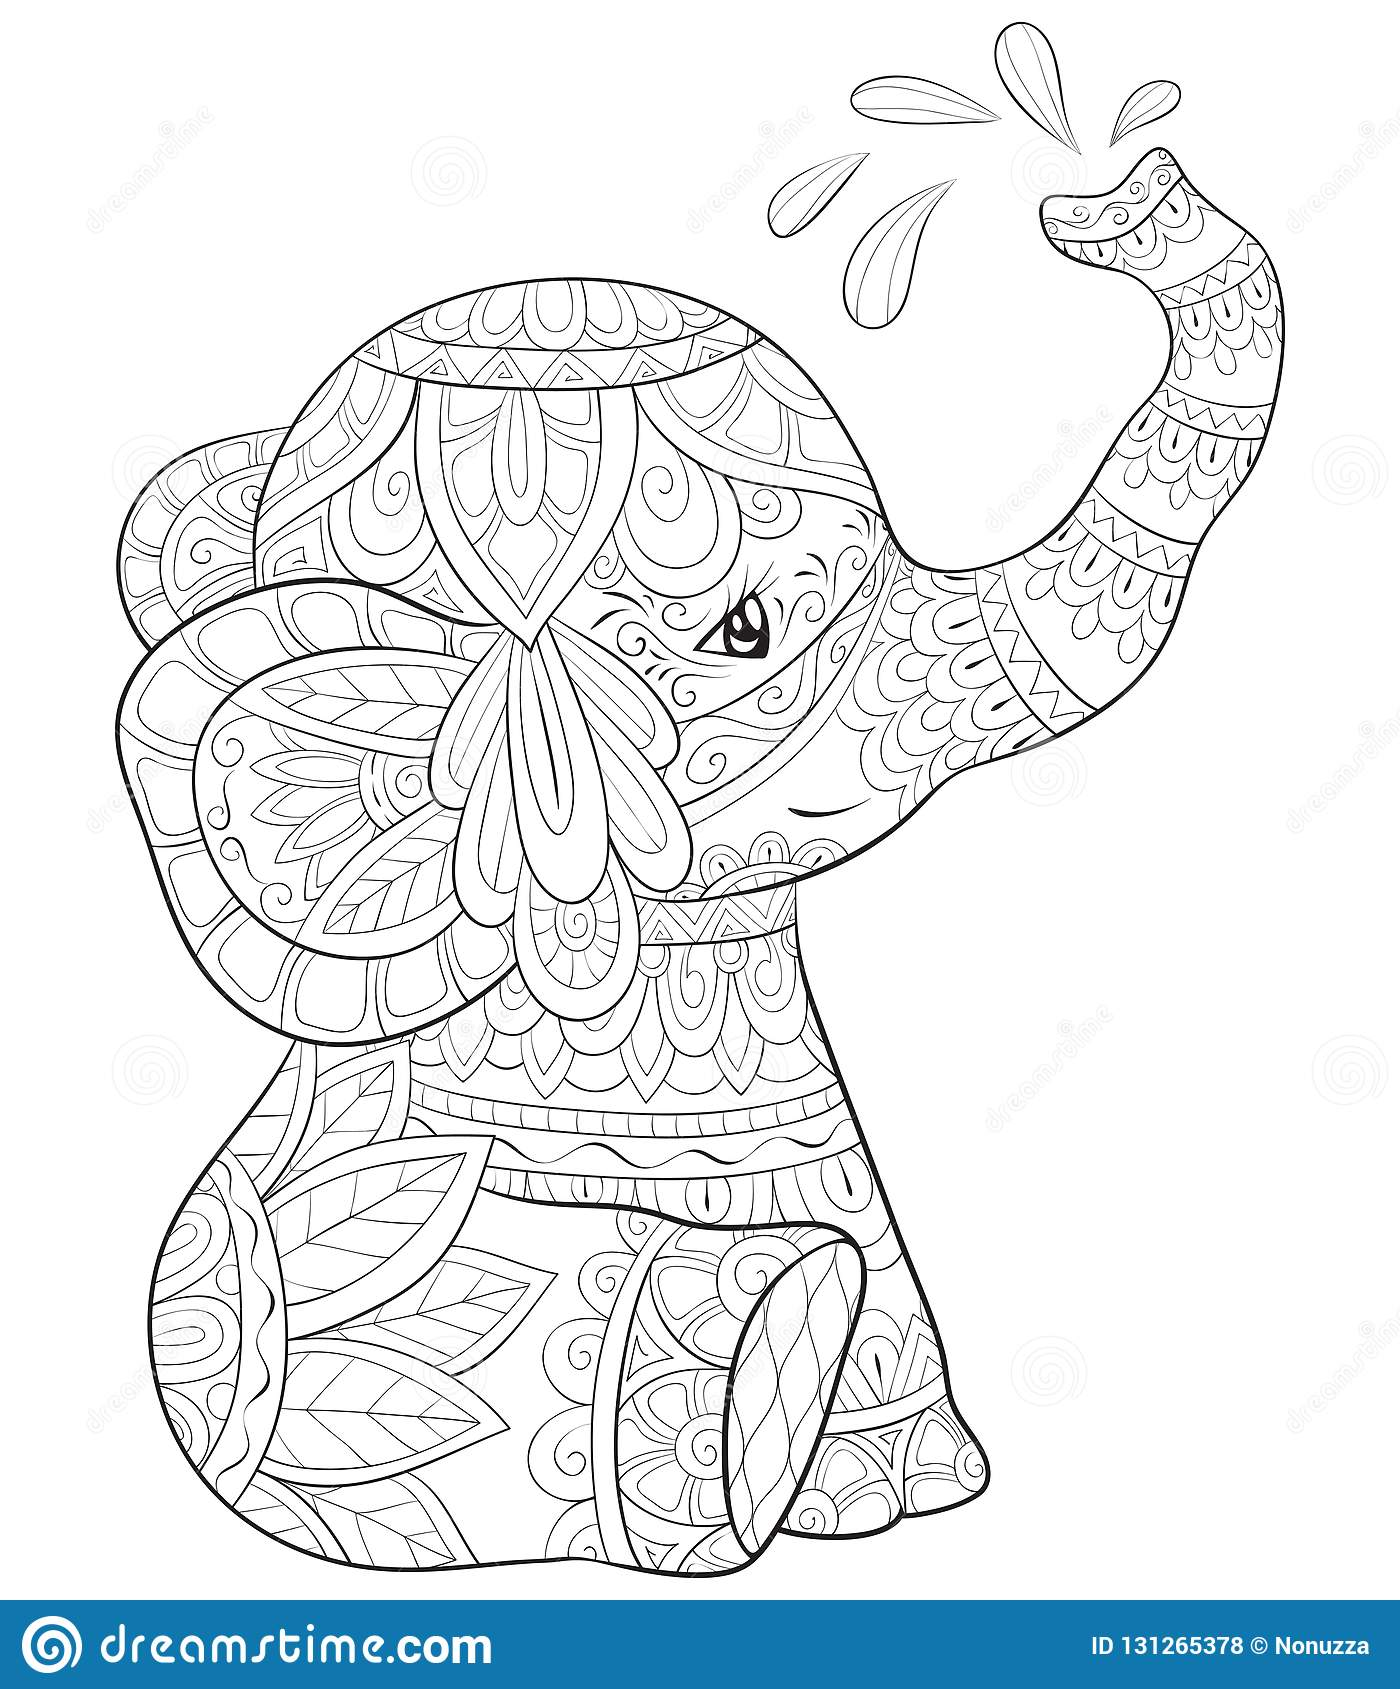 Adult Coloring Book,page A Cute Elephant Image For ...